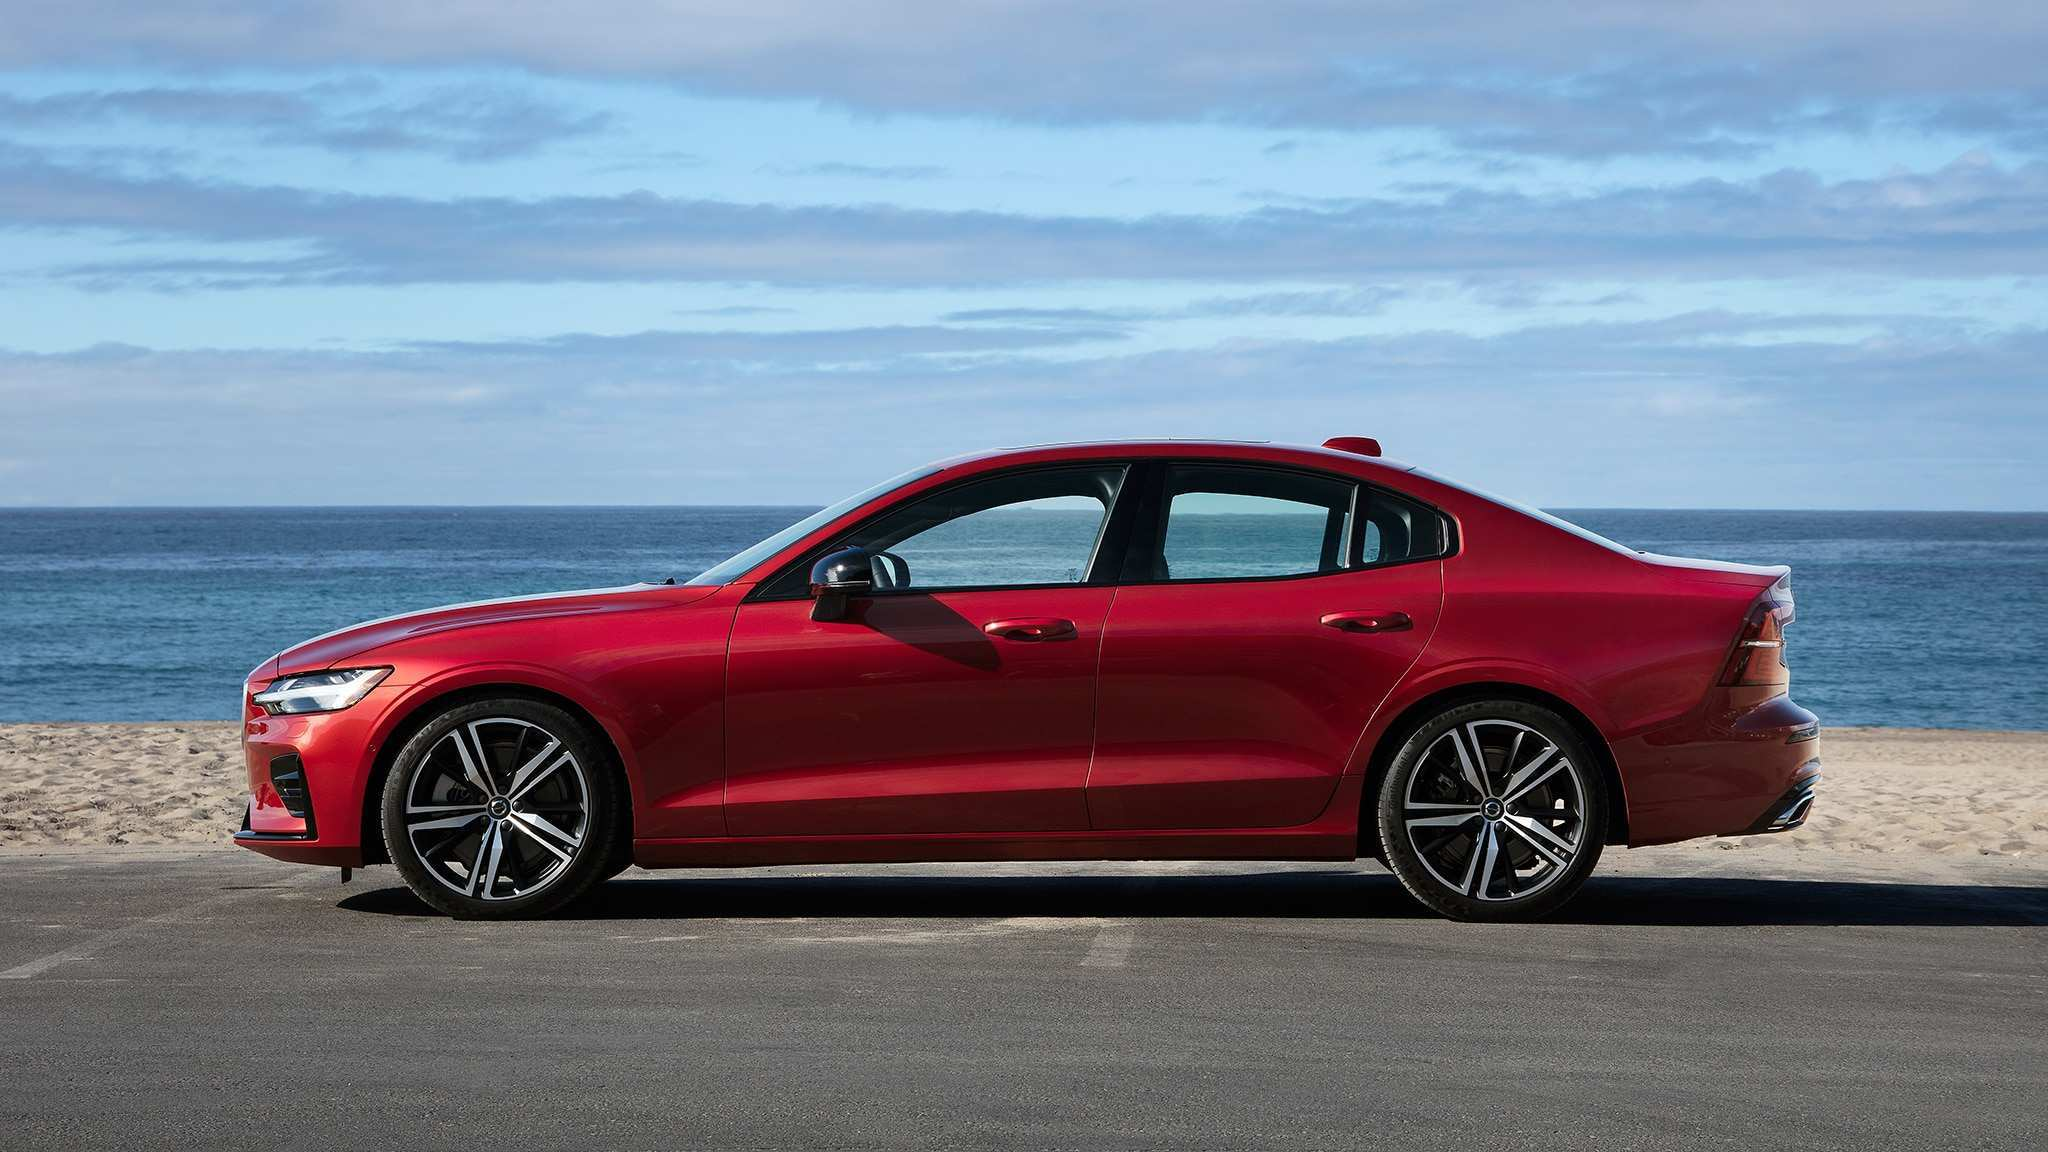 96 New Volvo S60 2019 Pictures by Volvo S60 2019